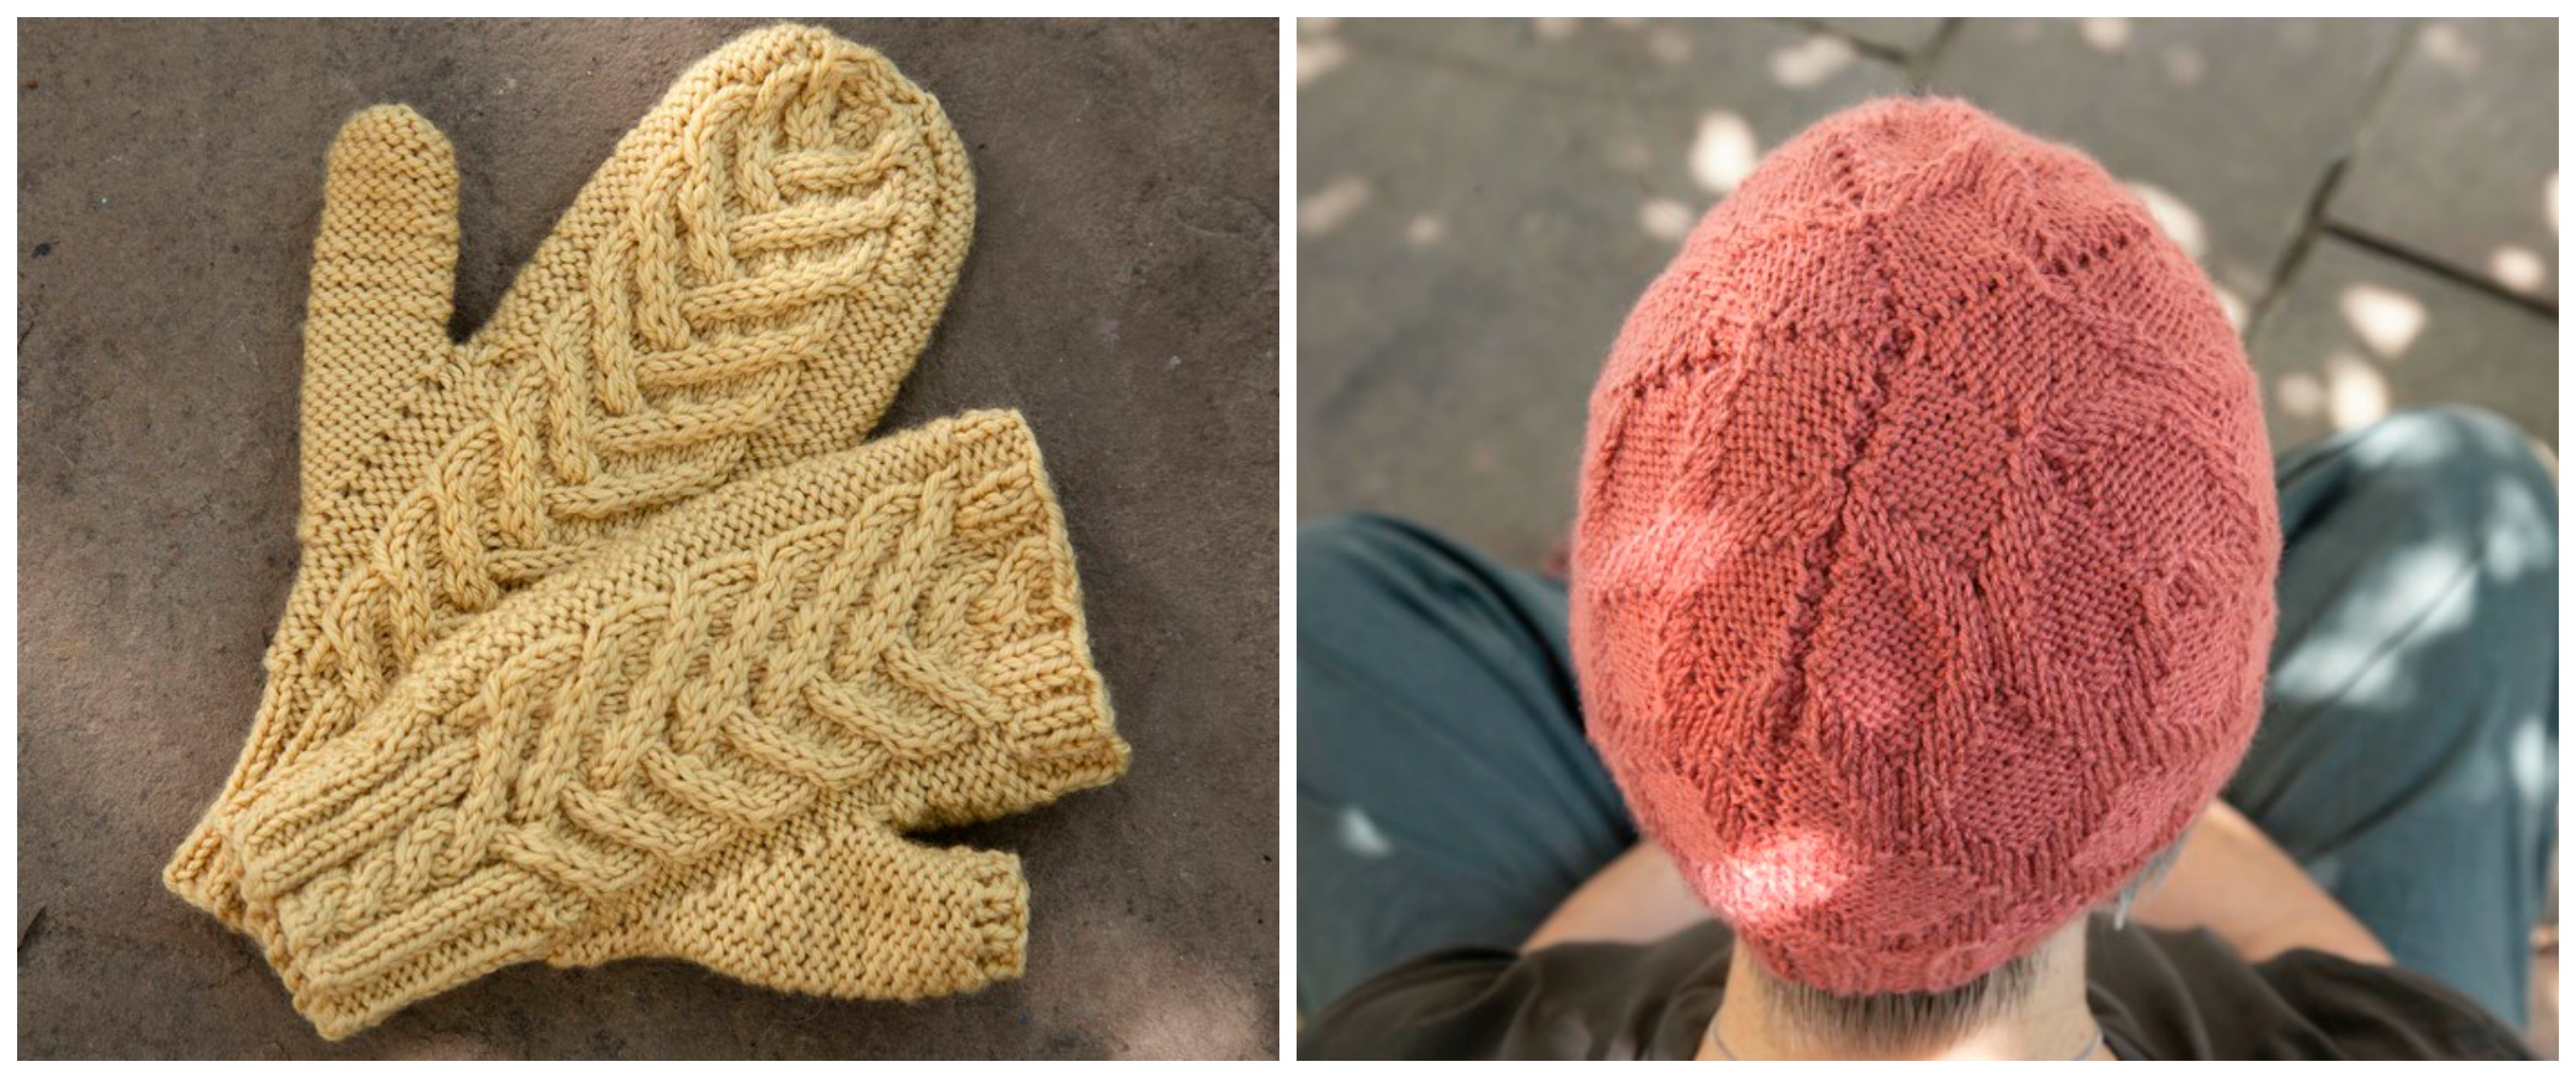 Check Out Our Lovely New Patterns Celebrating Commit To Knit Month